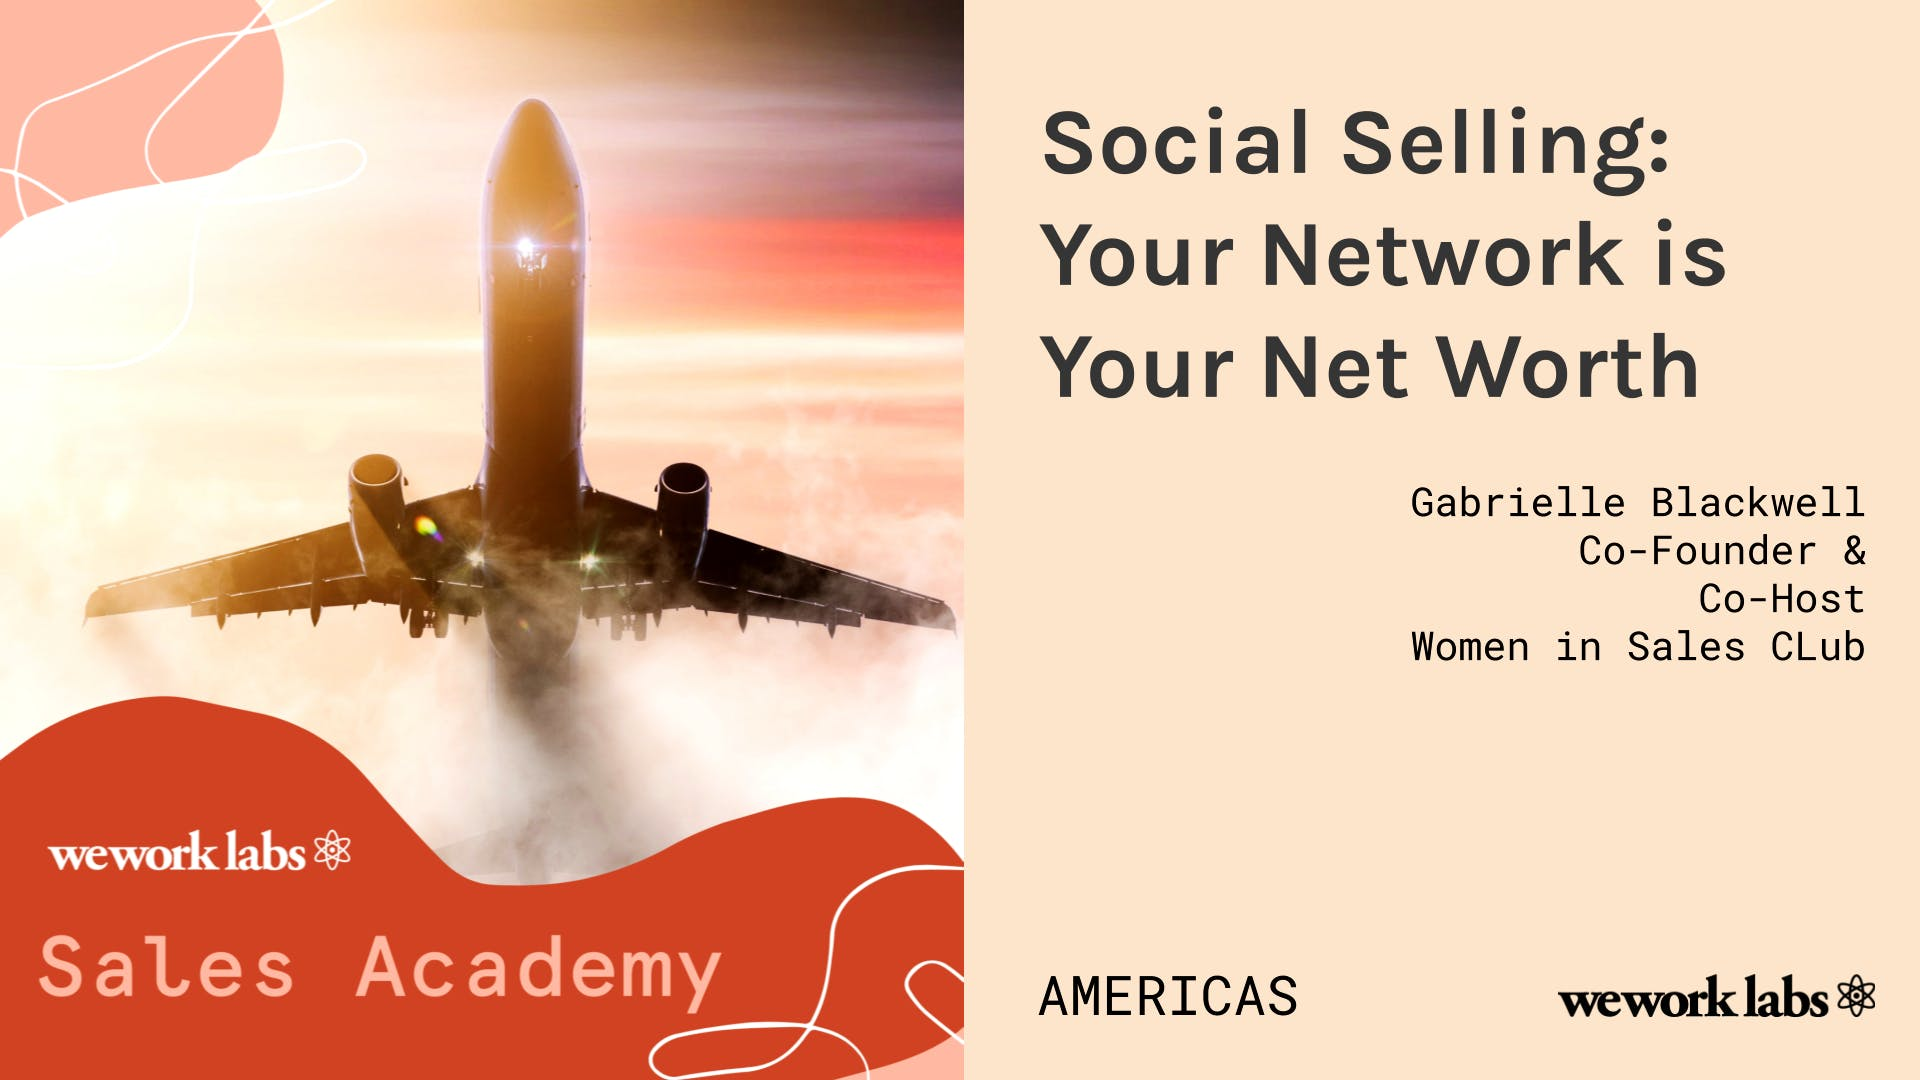 Sales Academy (Americas): Social Selling - Your Network is Your Net Worth